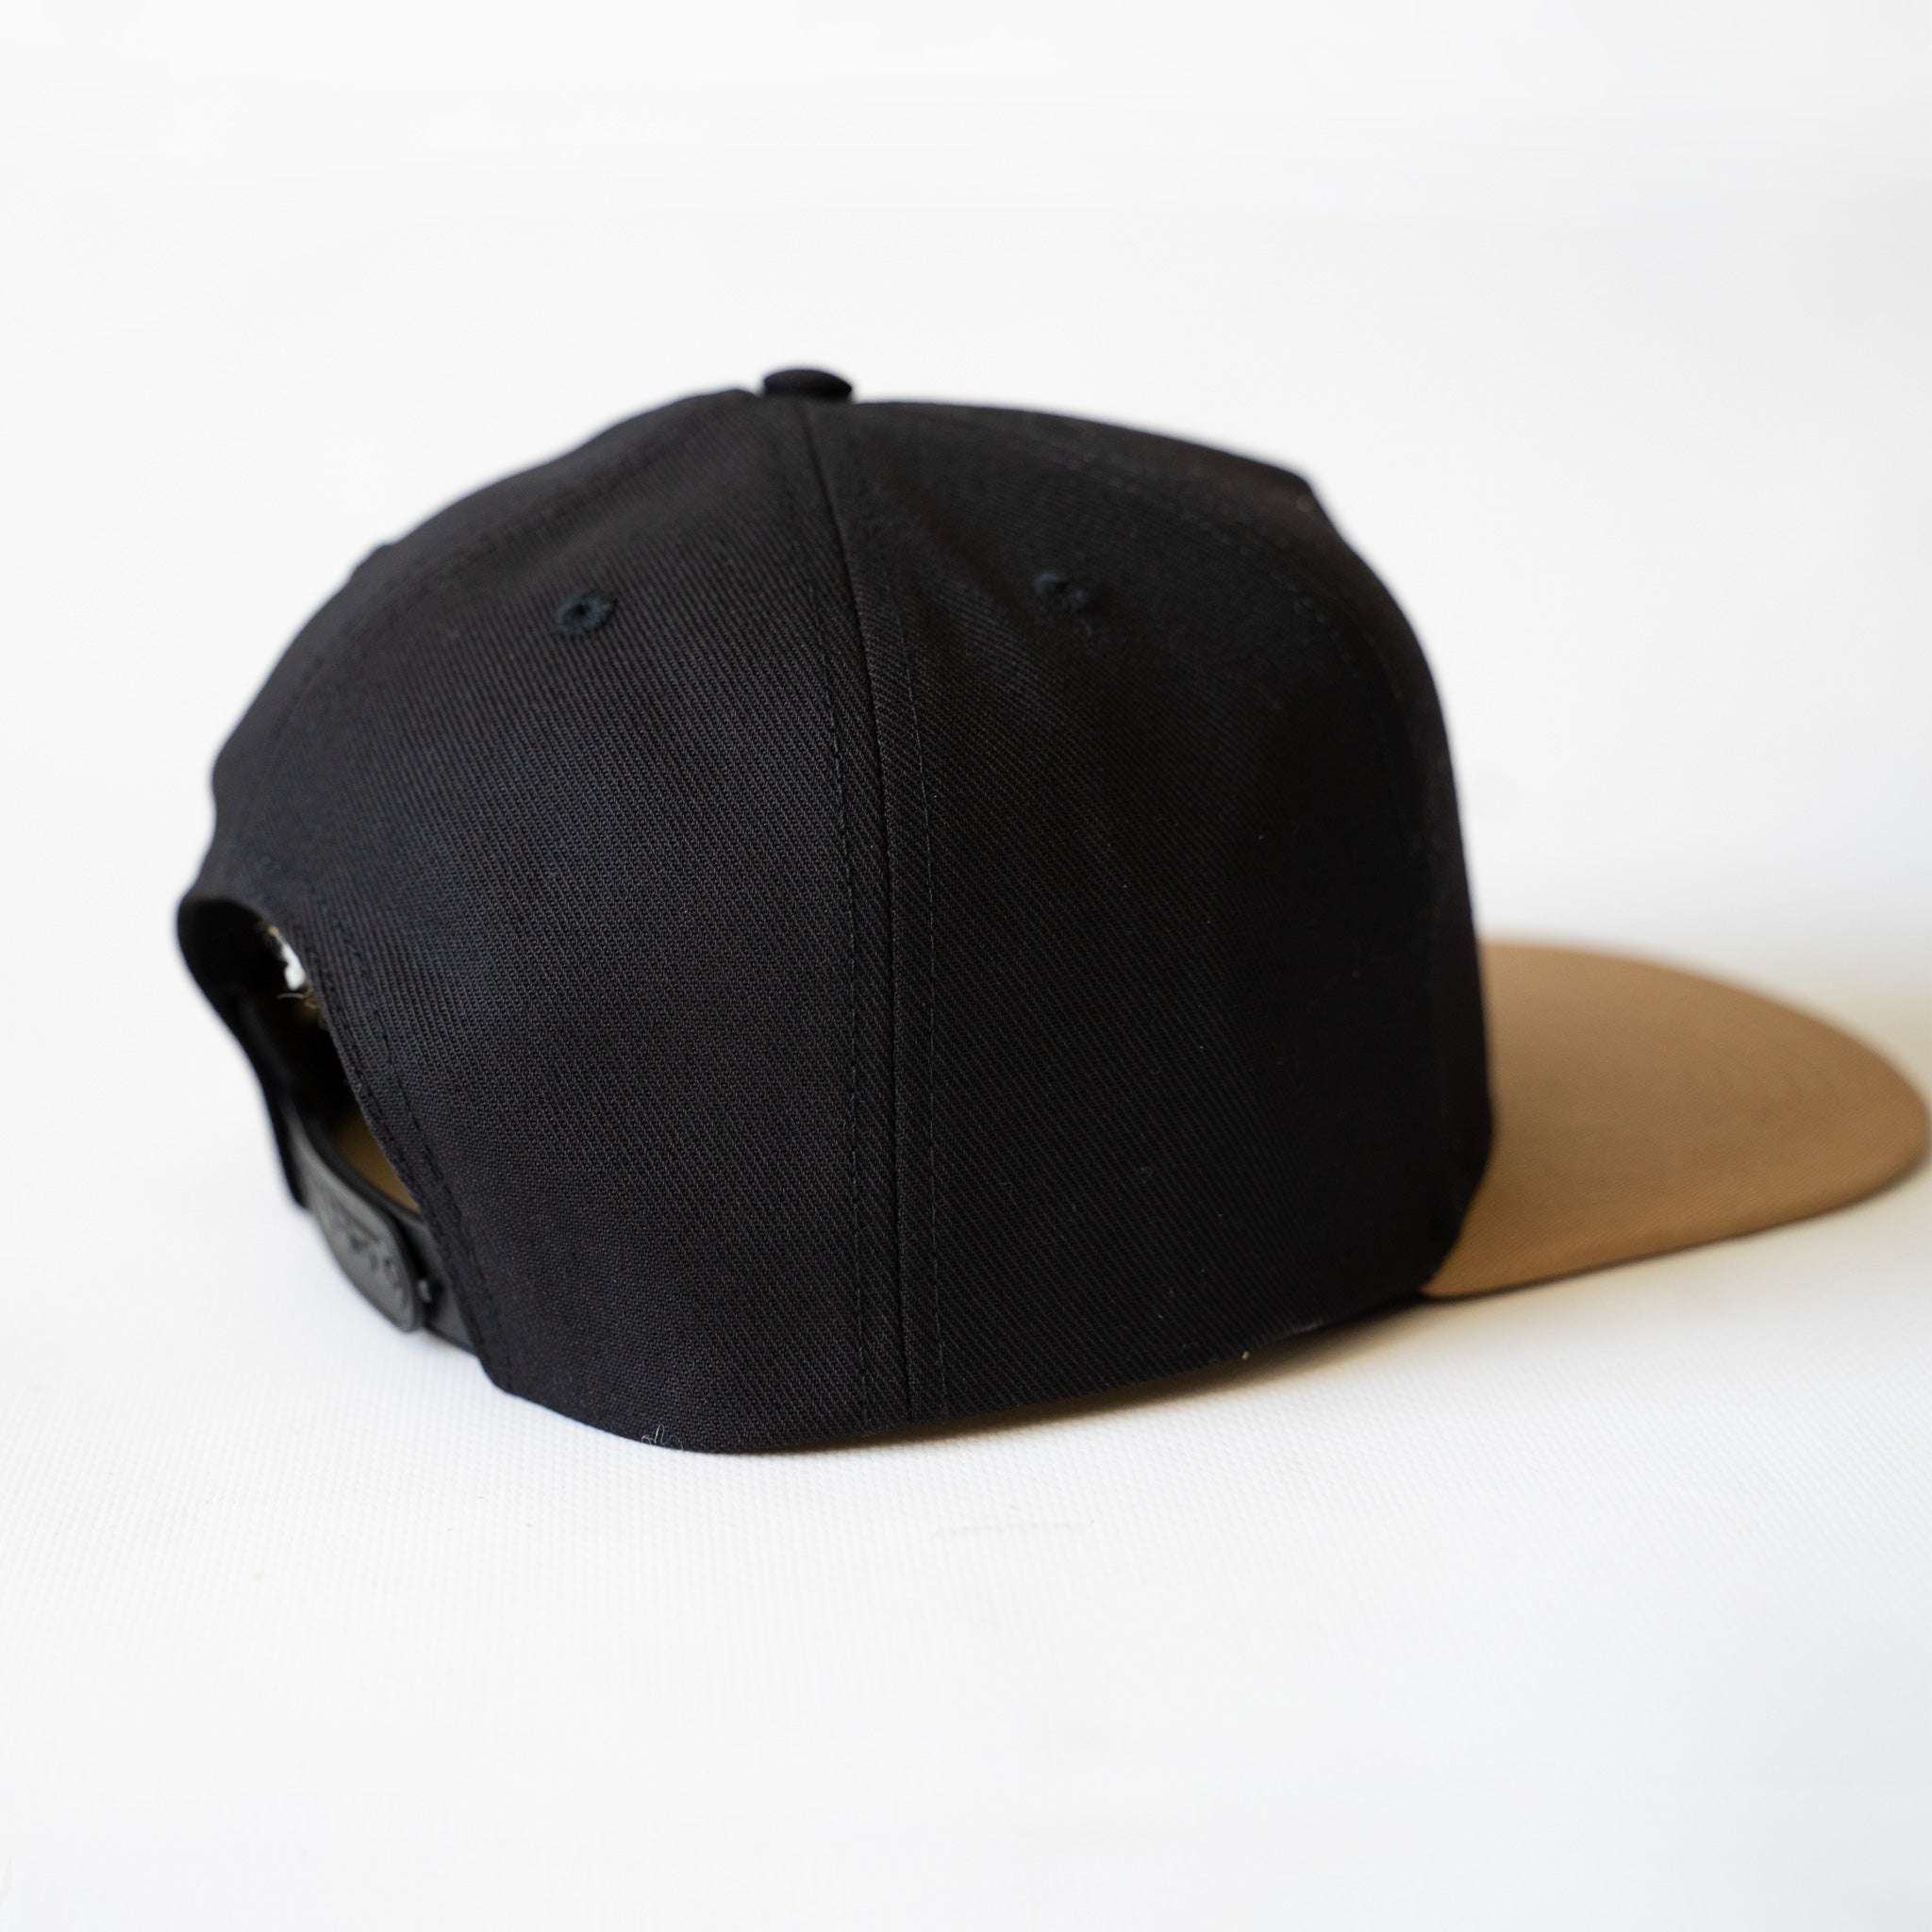 SB Cap 5 Panel - Noppenviech